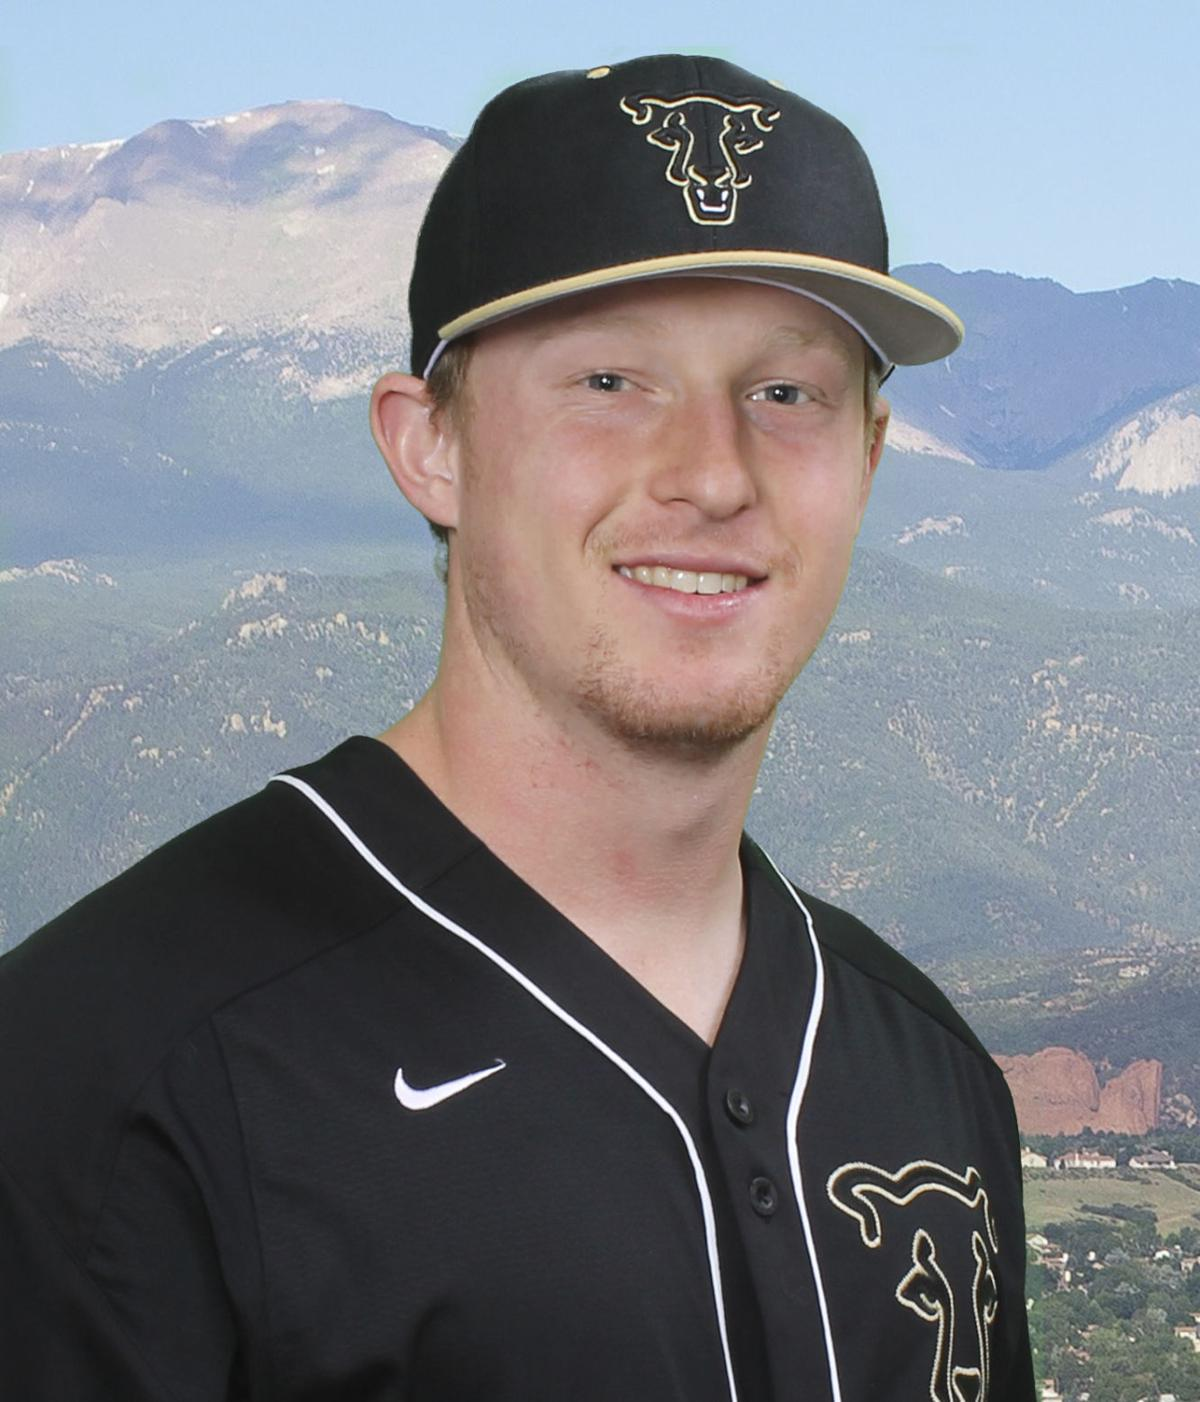 Rockies draft UCCS product Zach Hall